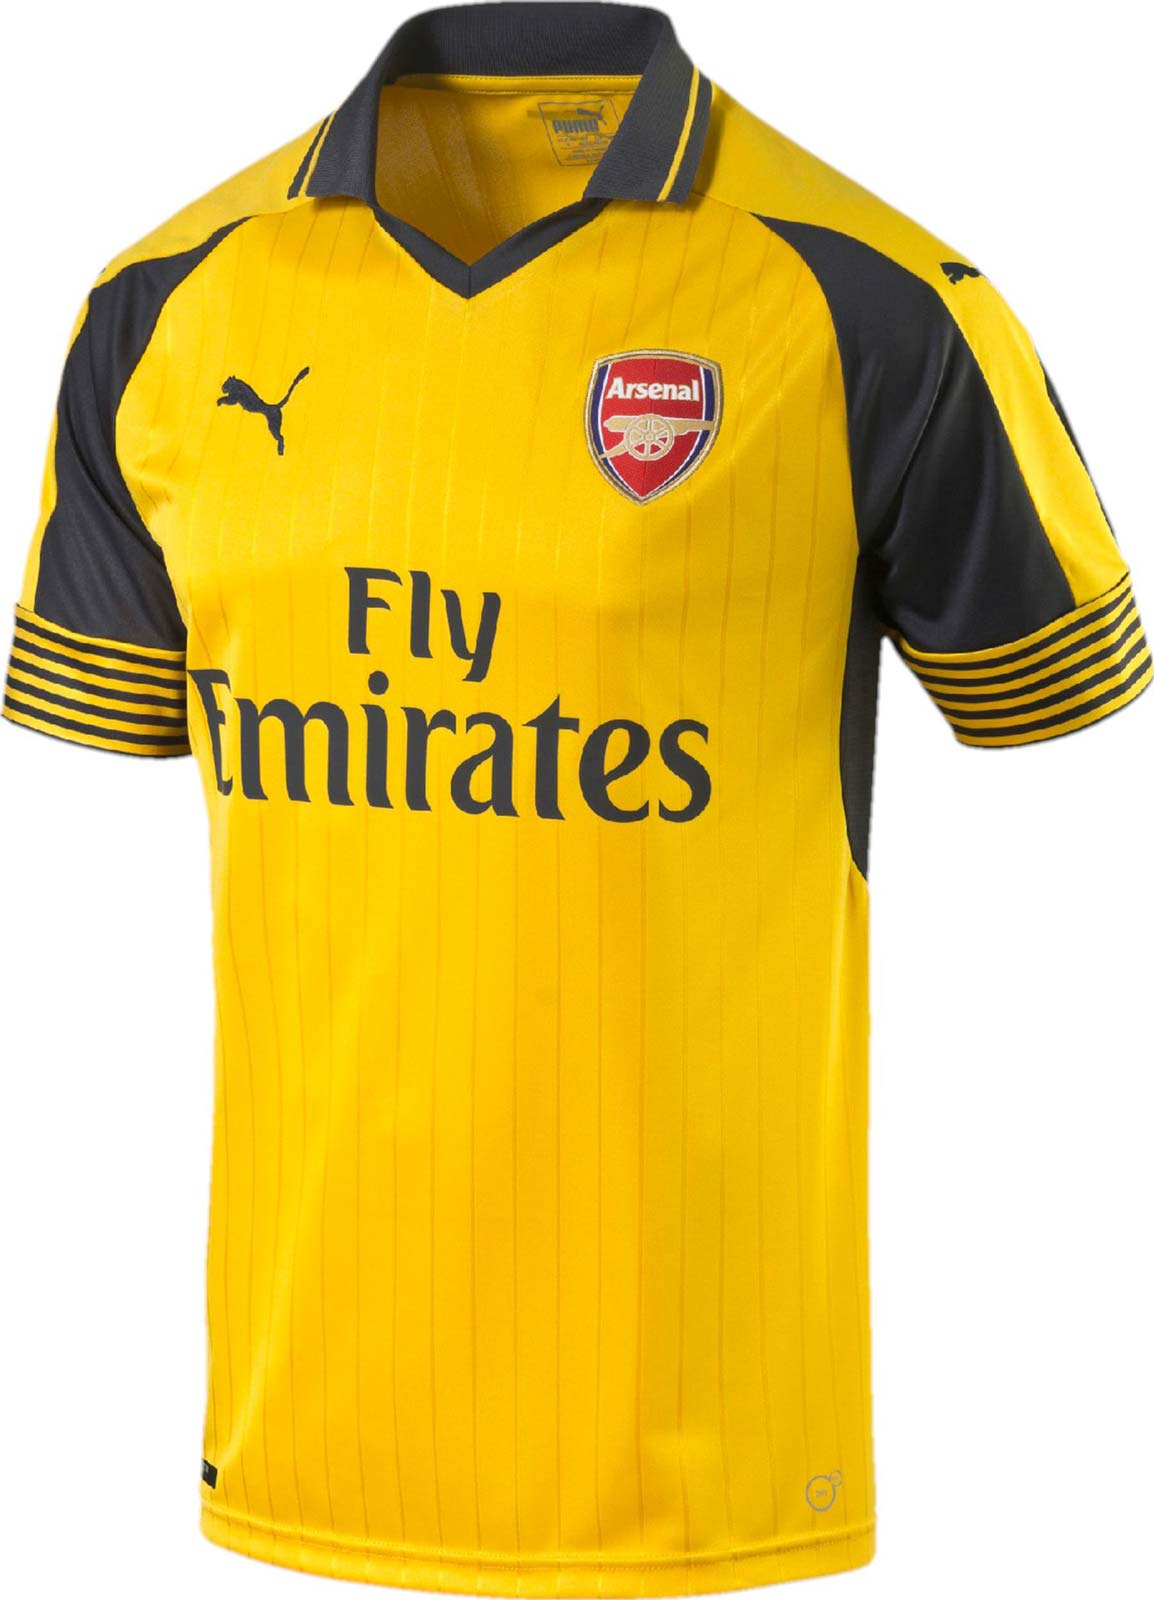 arsenal yellow jersey